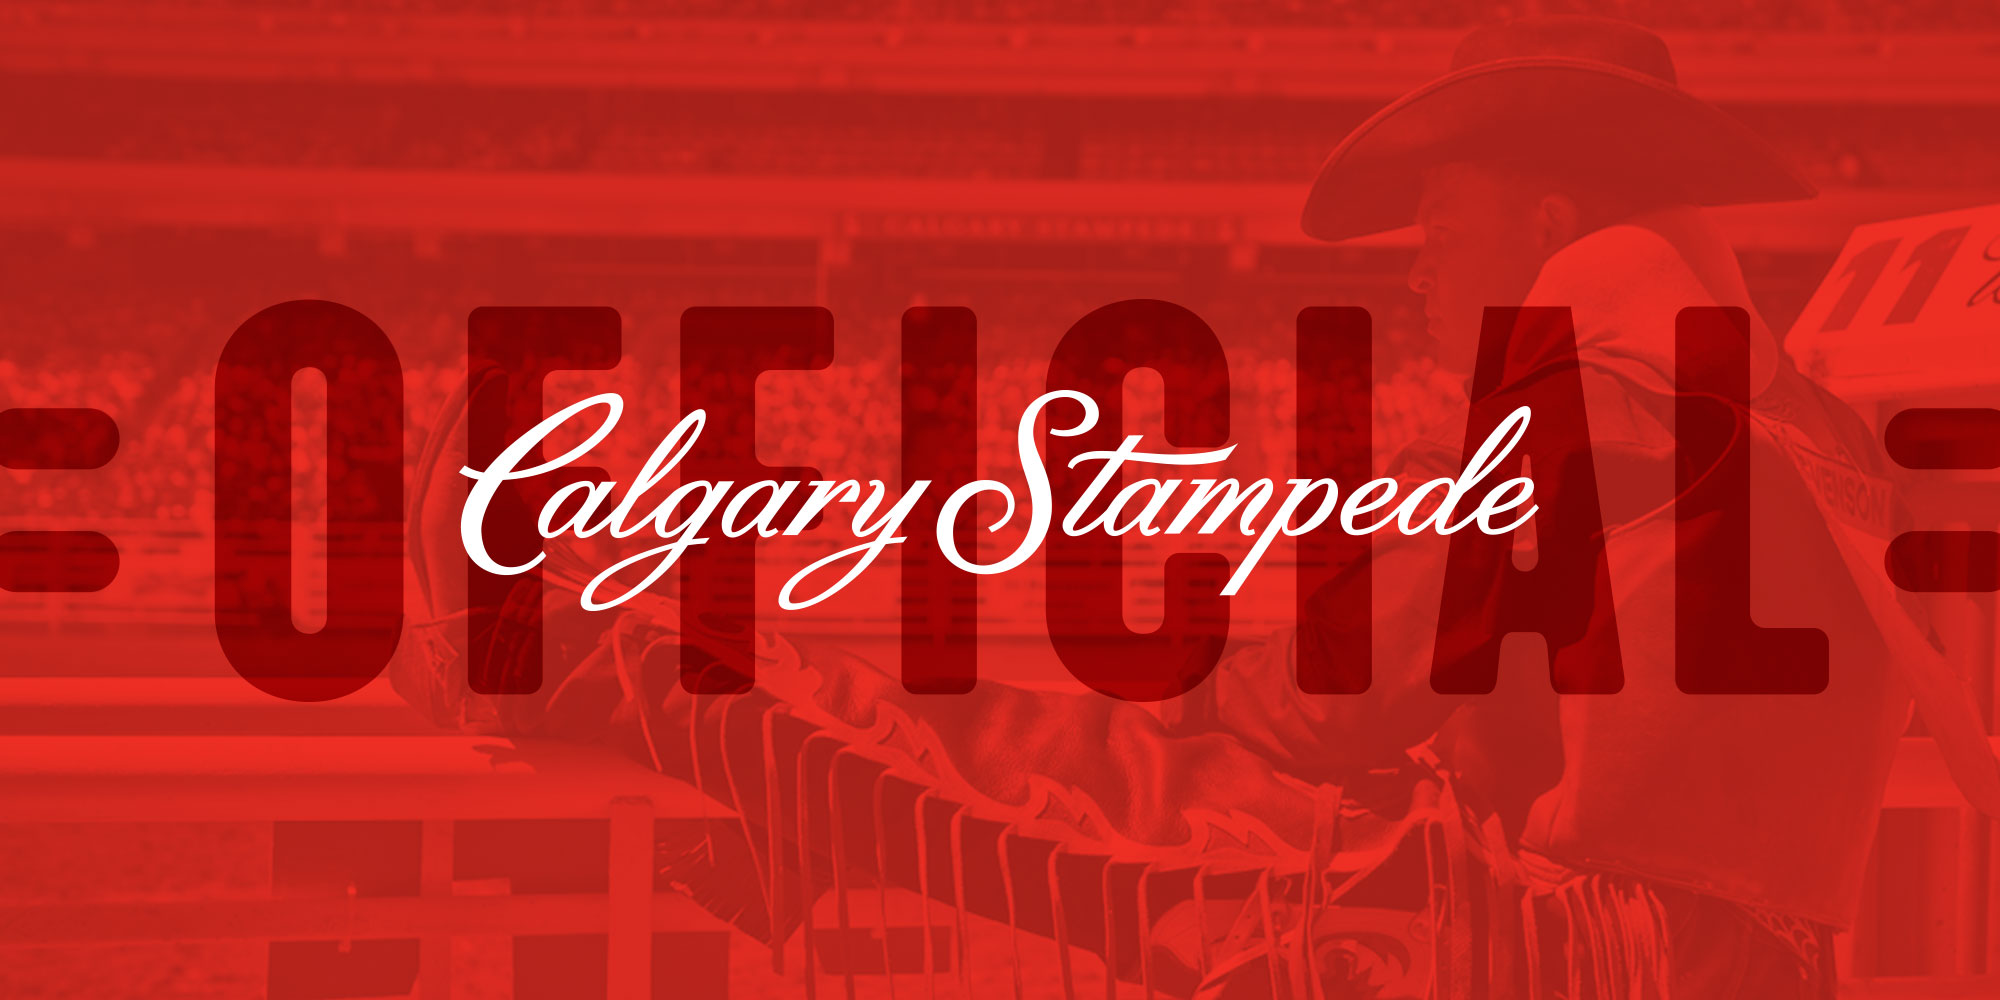 Calgary Stampede Licensed Merchandise Standards